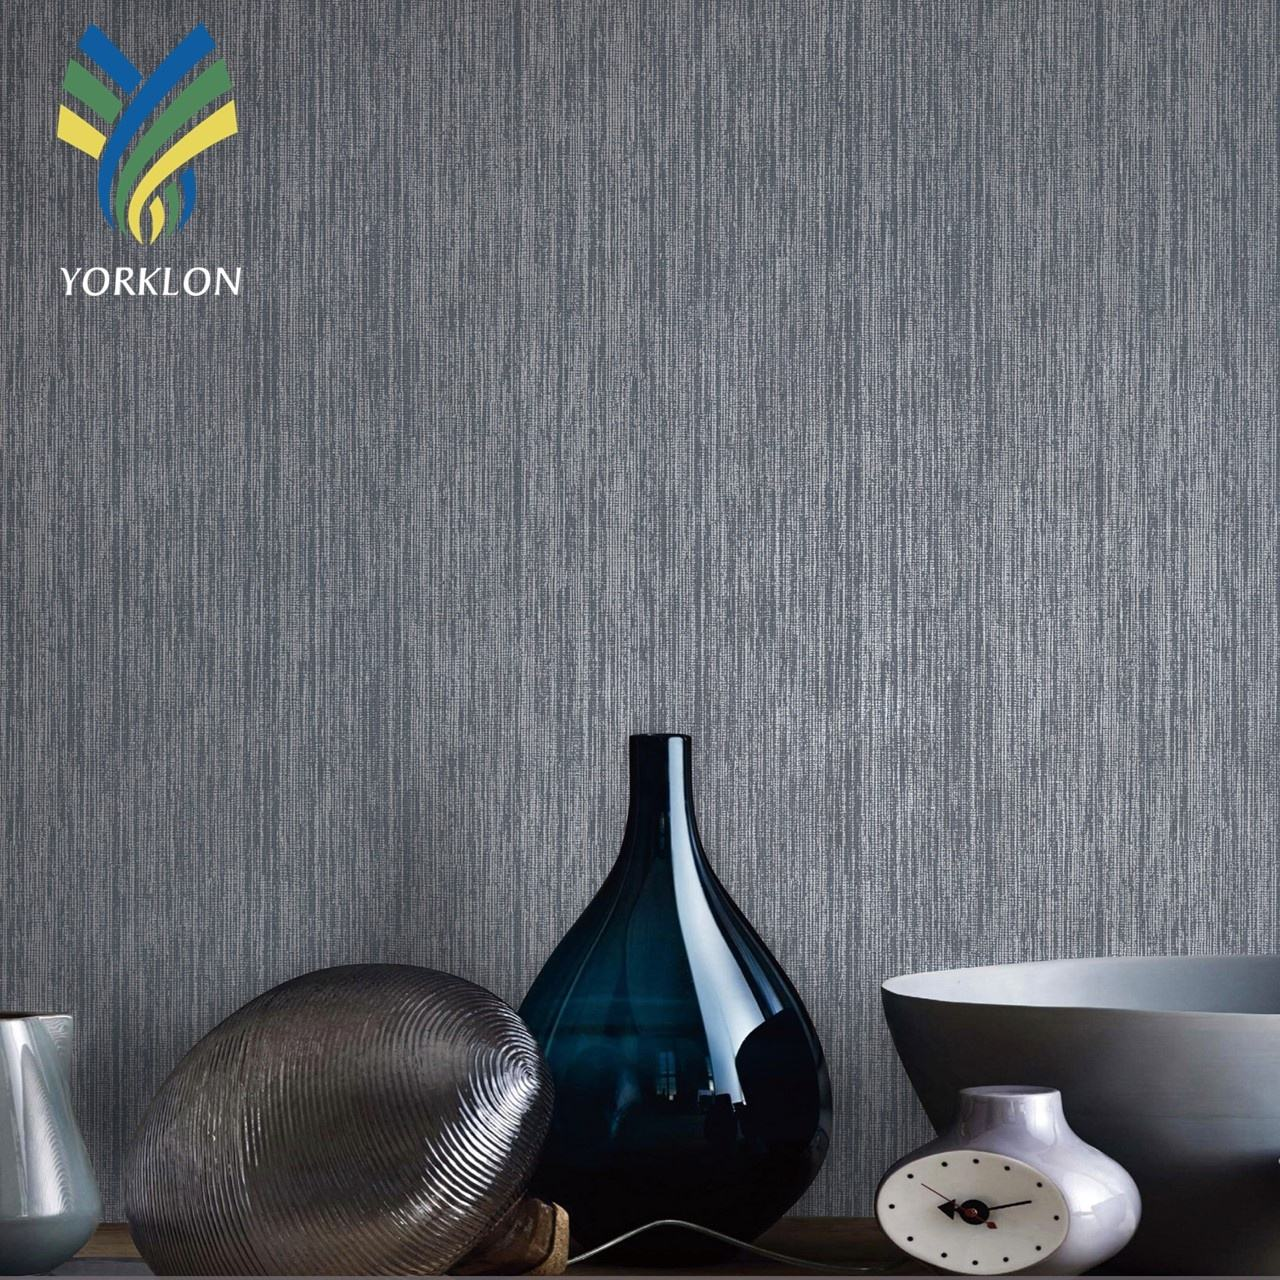 YKPQ 2 Luxury Shimmer Wallpaper Plain Color Line Knit Wallpapers Manufacturer Wallpaper 3d Home Decoration Wall paper For Room